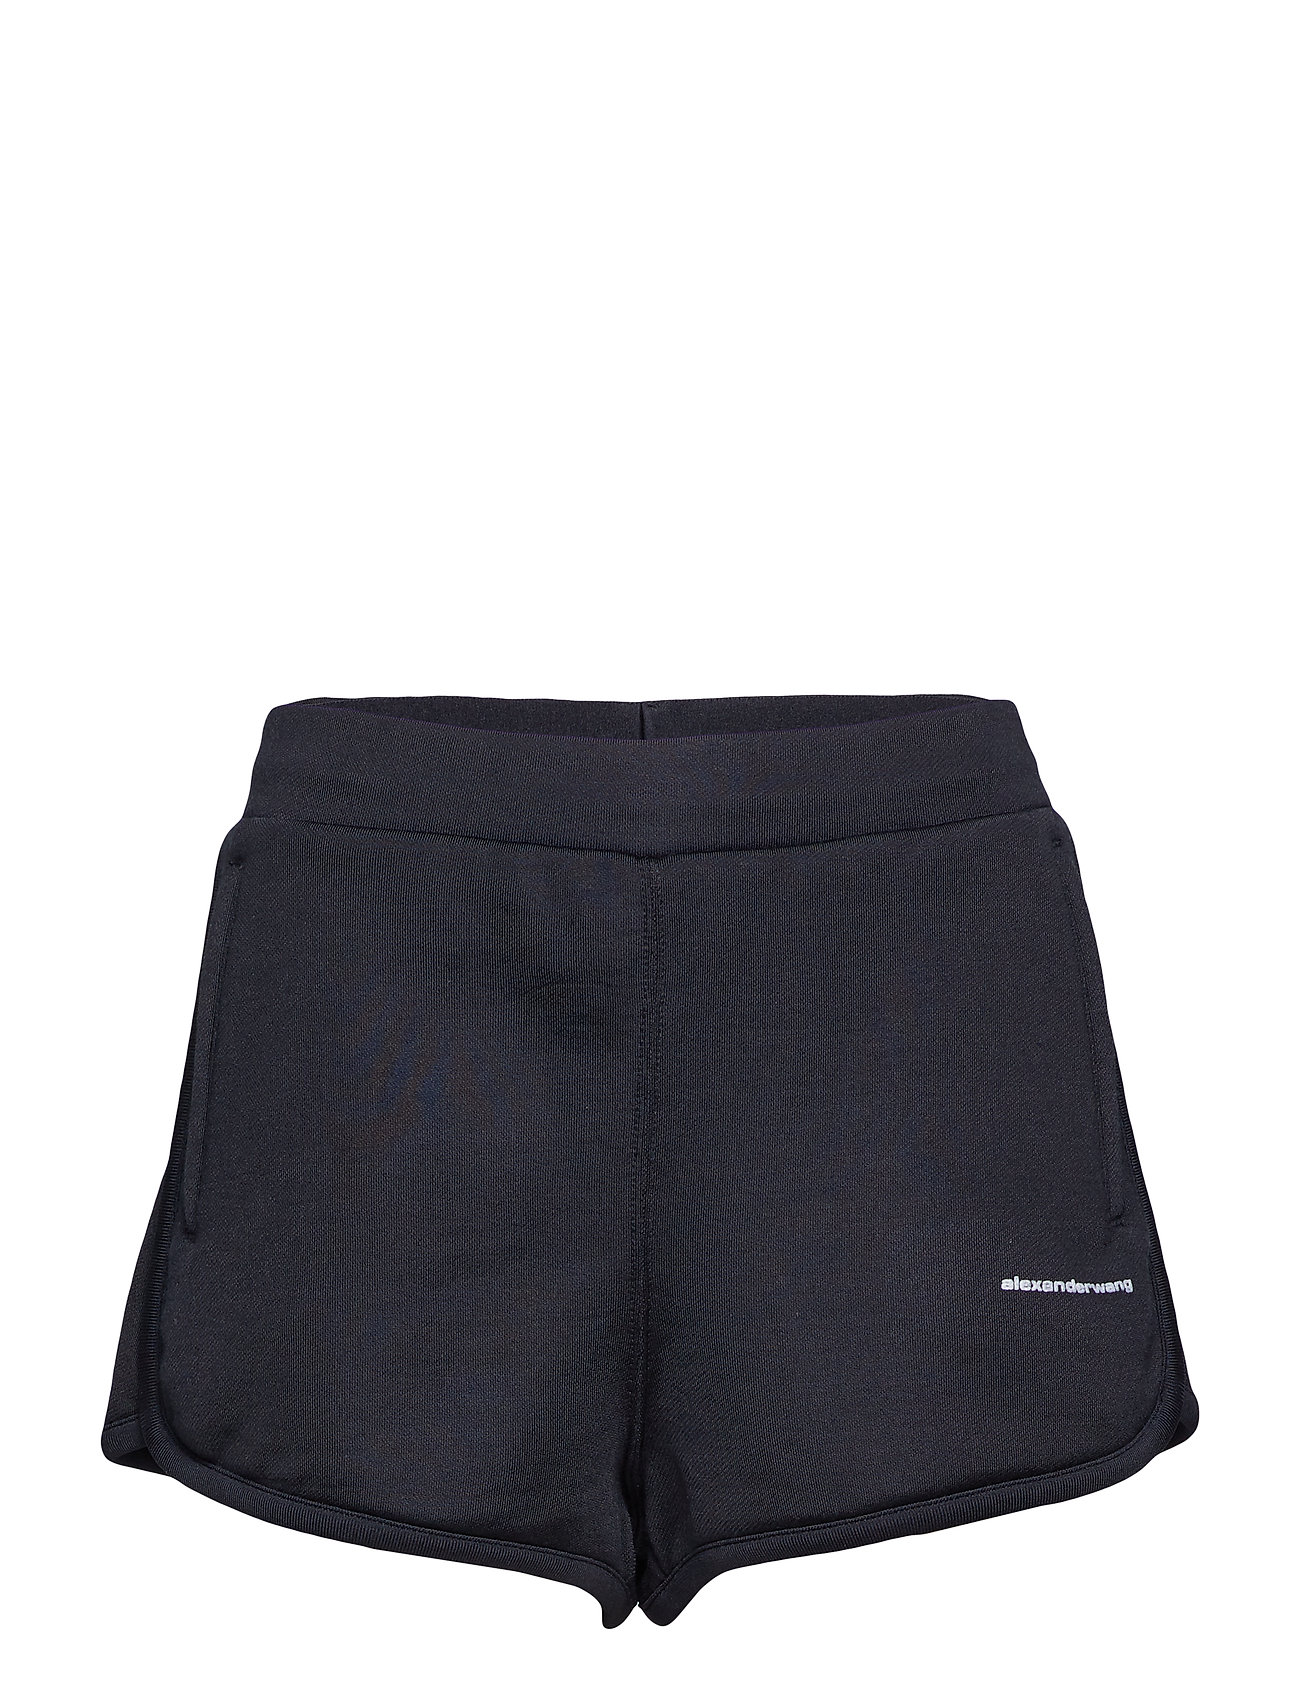 T by Alexander Wang HEAVY SLEEK FRENCH TERRY TRACK SHORTS - BLACK